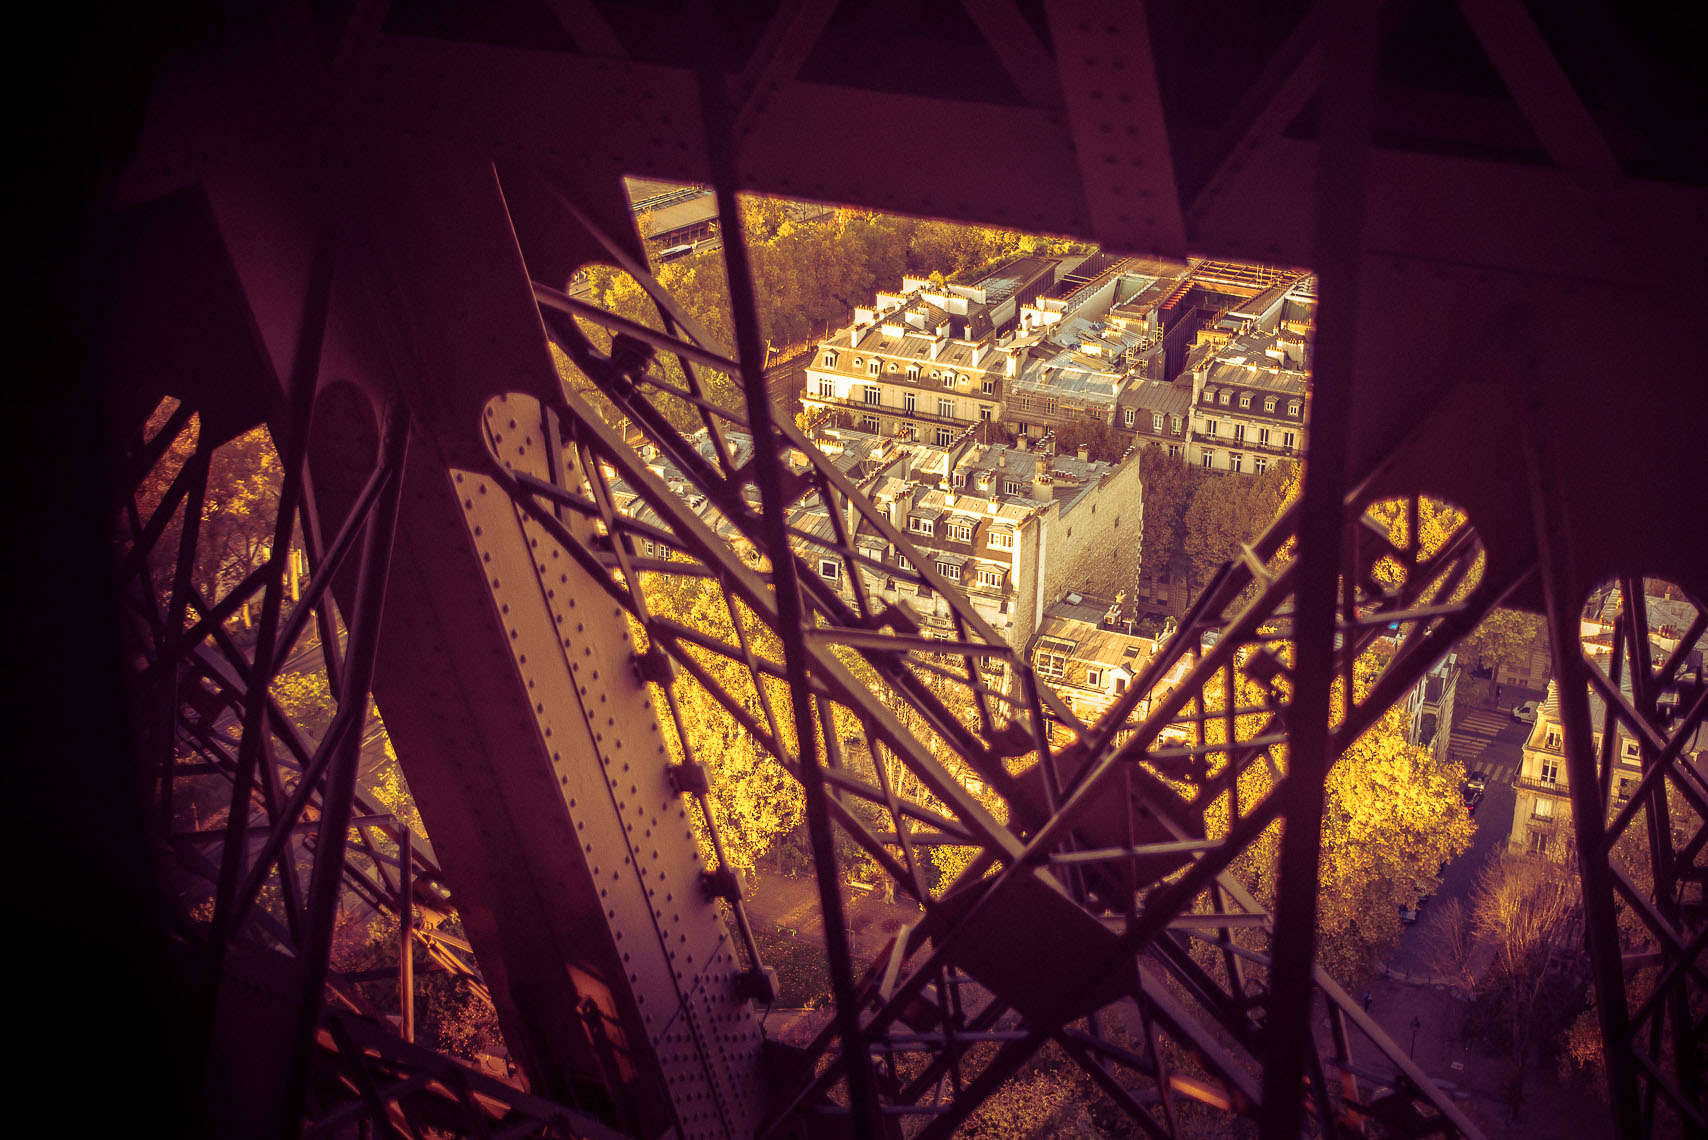 023_Paris by D800_La Tour Eiffel.jpg